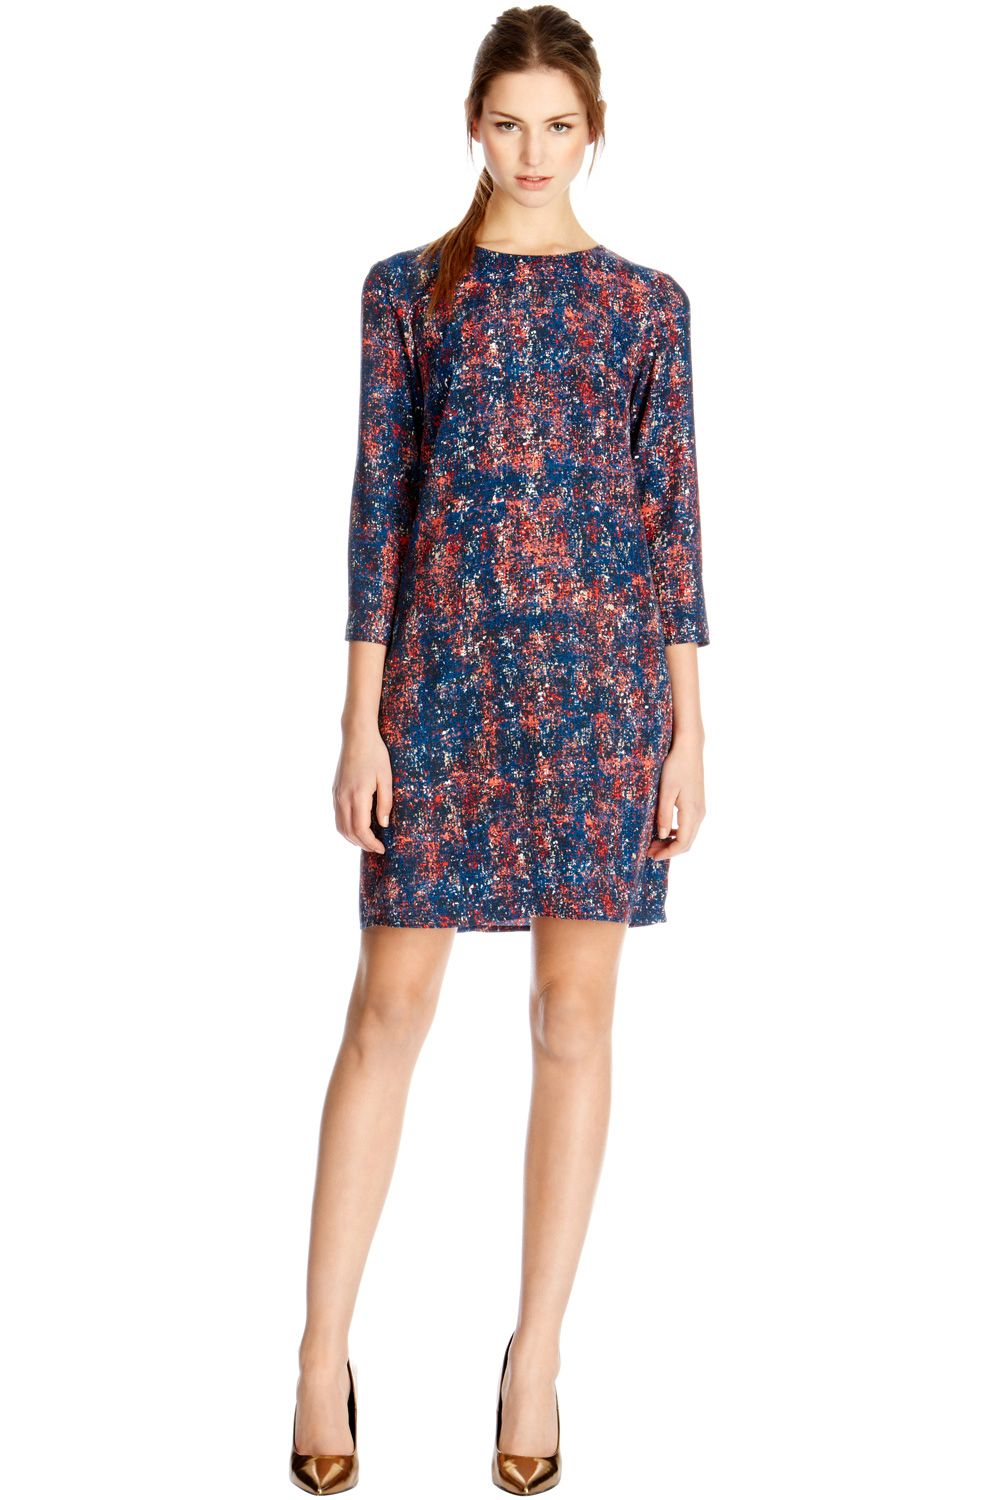 Scratchy texture print shift dress